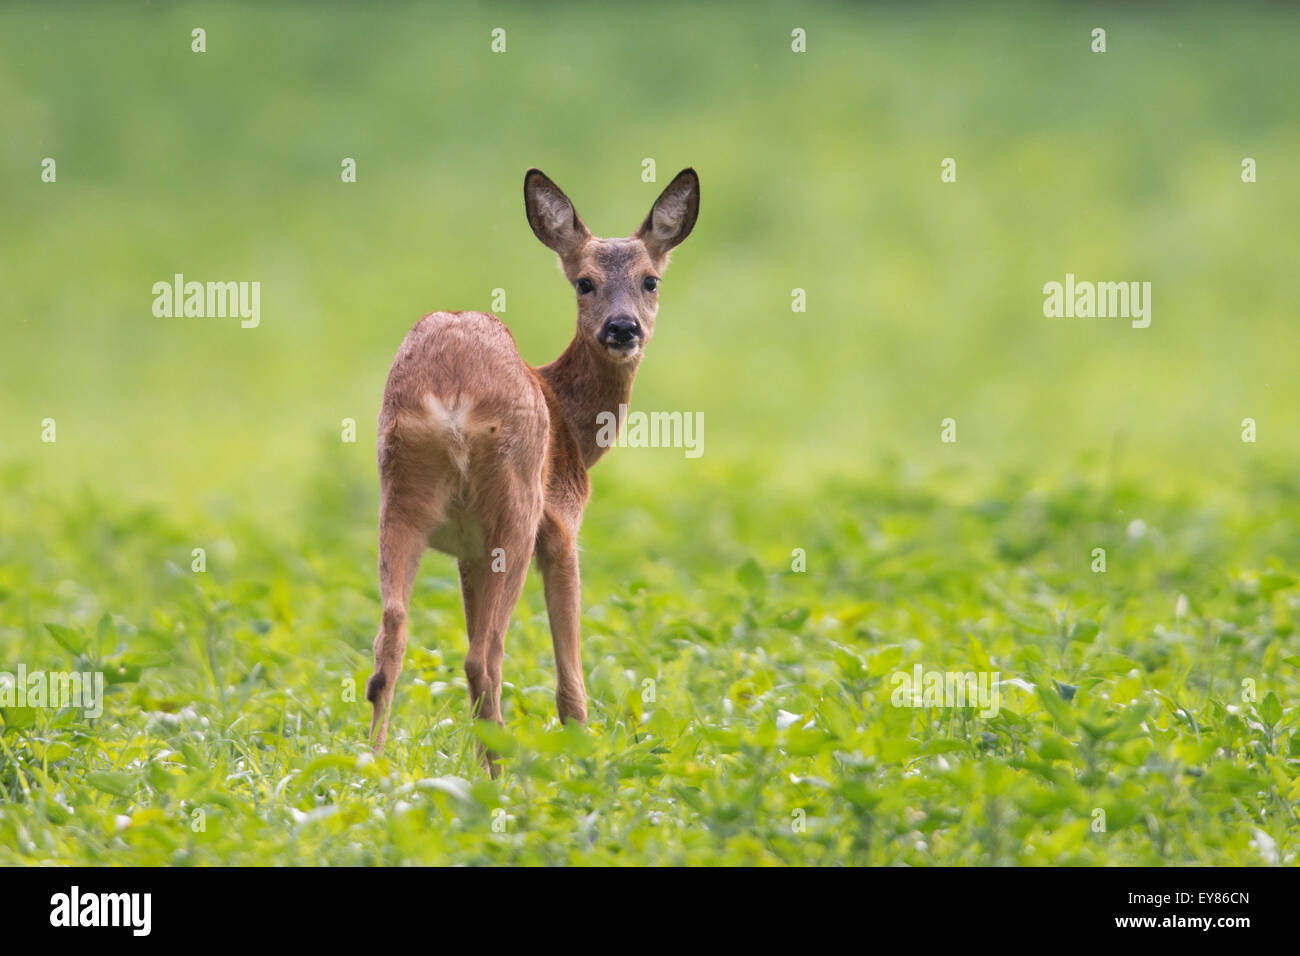 Le Chevreuil (Capreolus capreolus) standing in green field, de l'Ems, Basse-Saxe, Allemagne Photo Stock